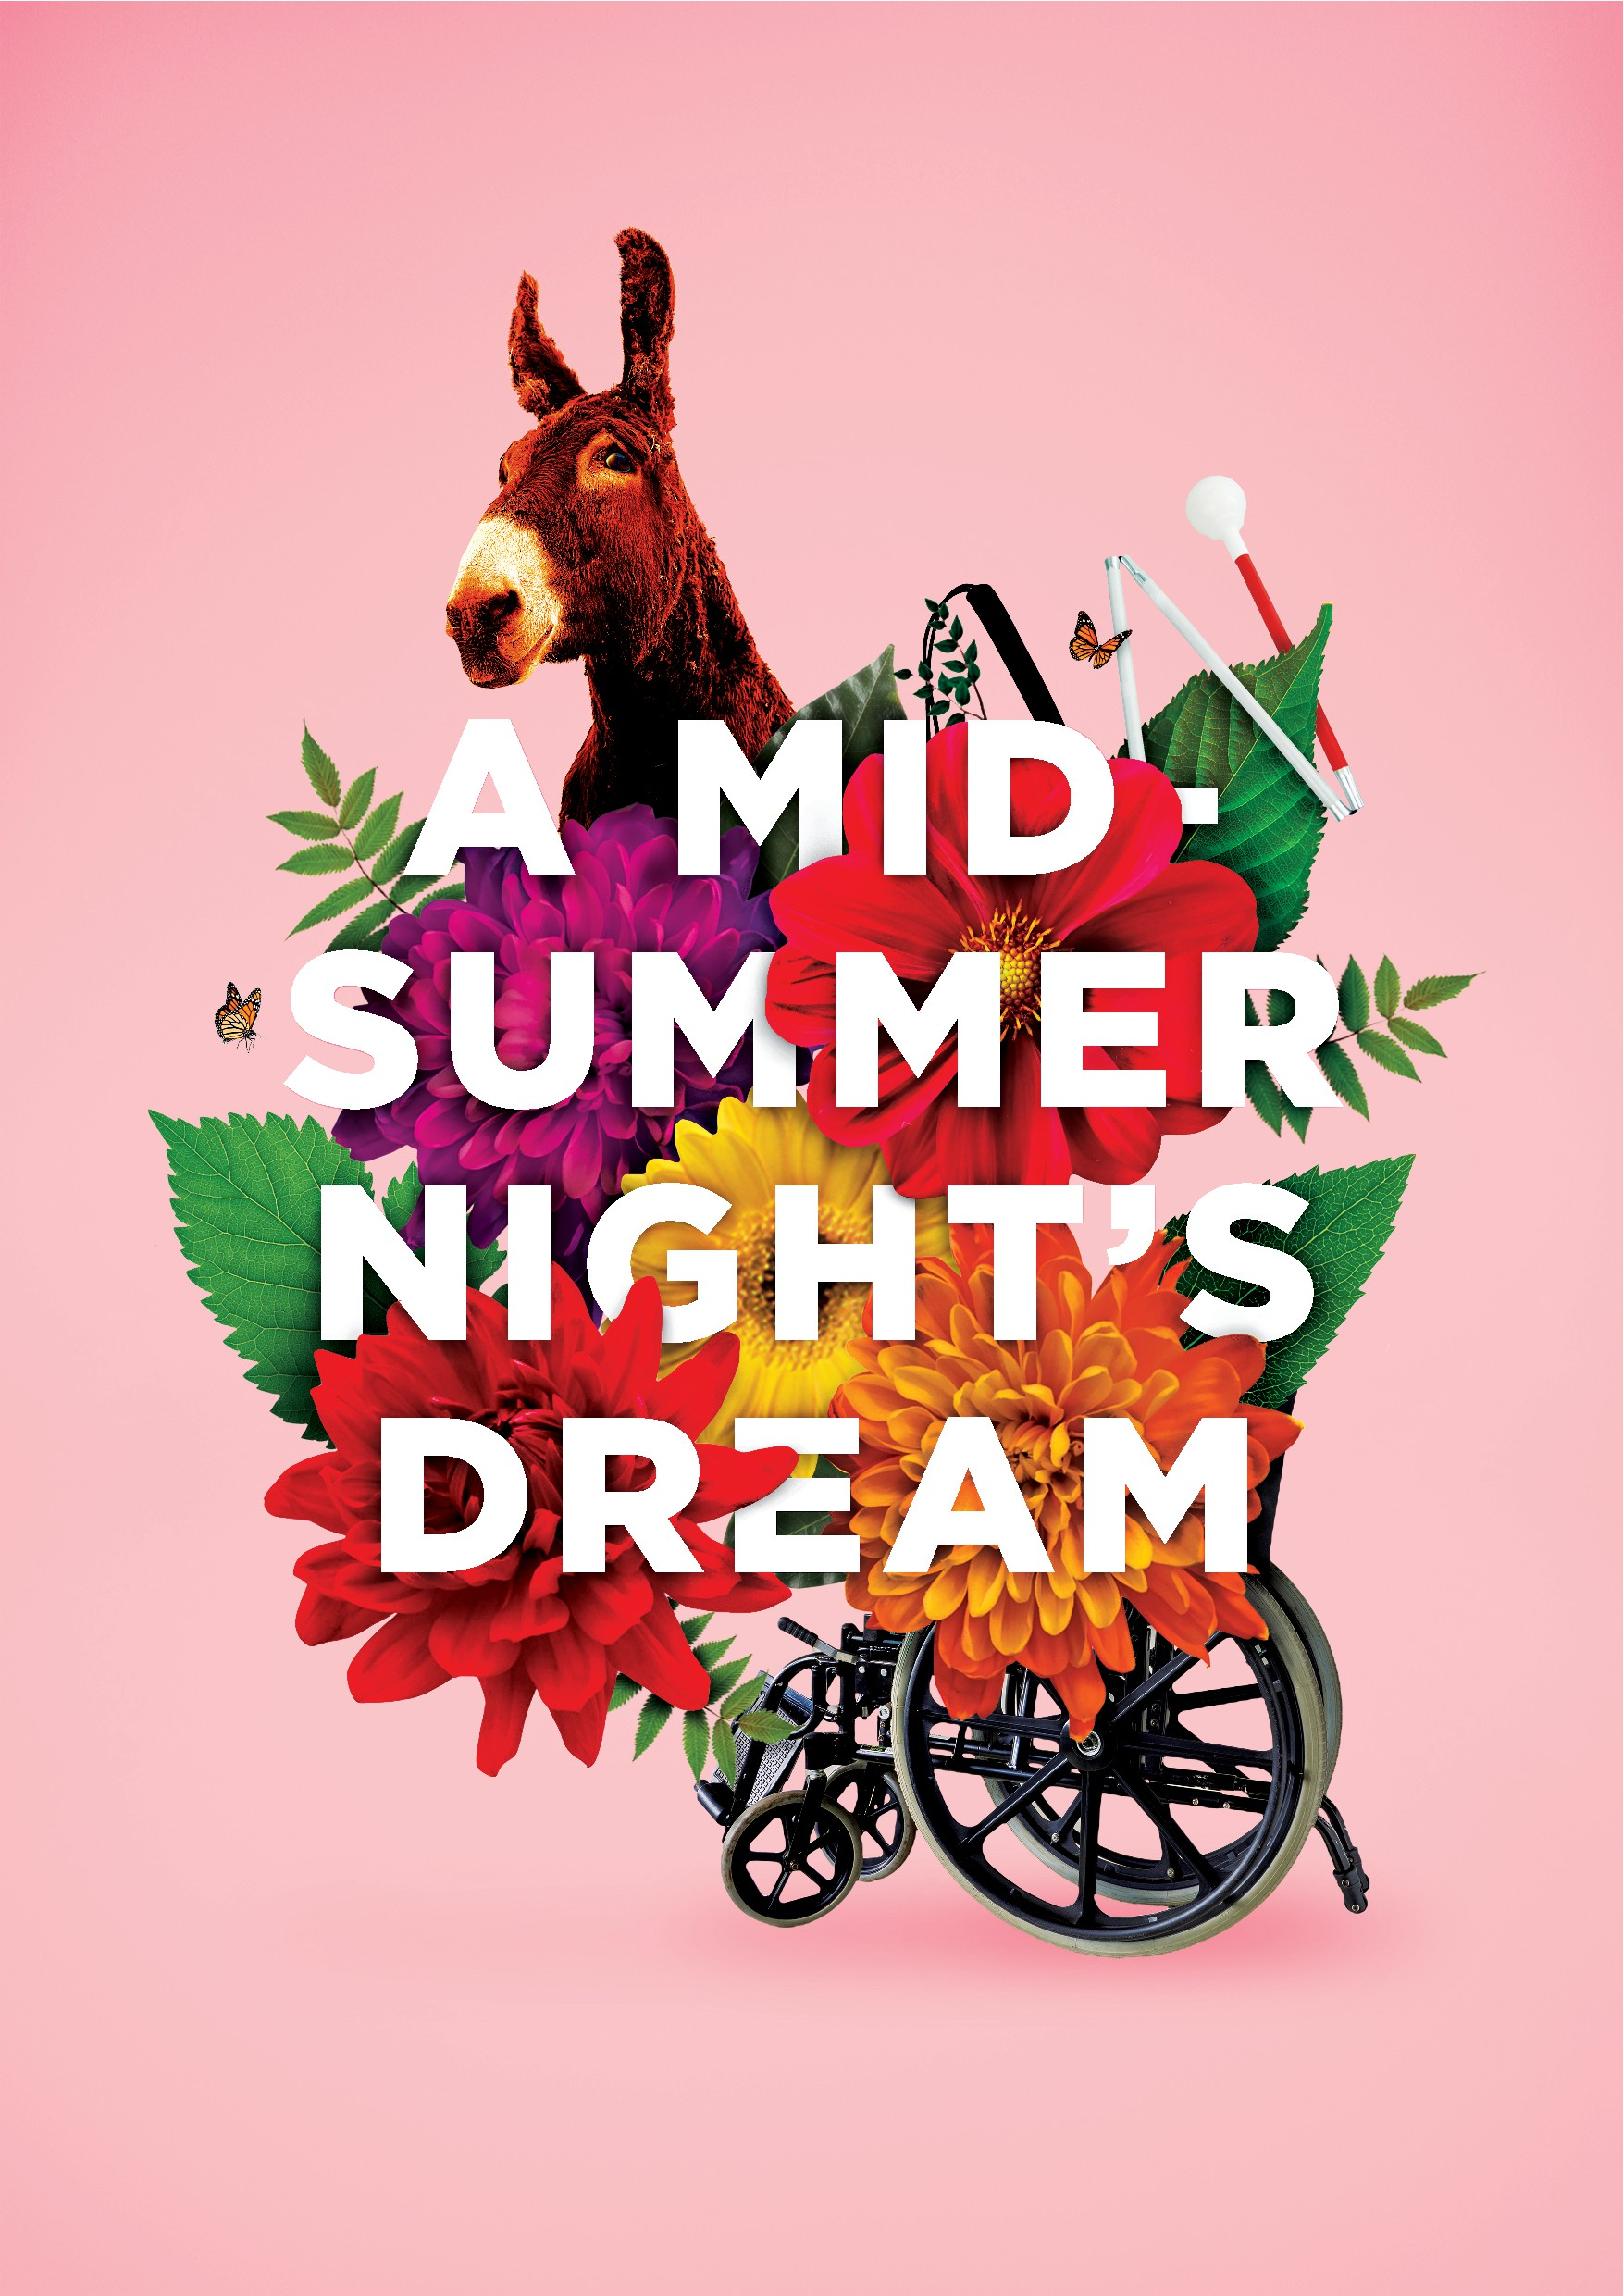 A Midsummer Night's Dream Poster (Actors with Disabilities)